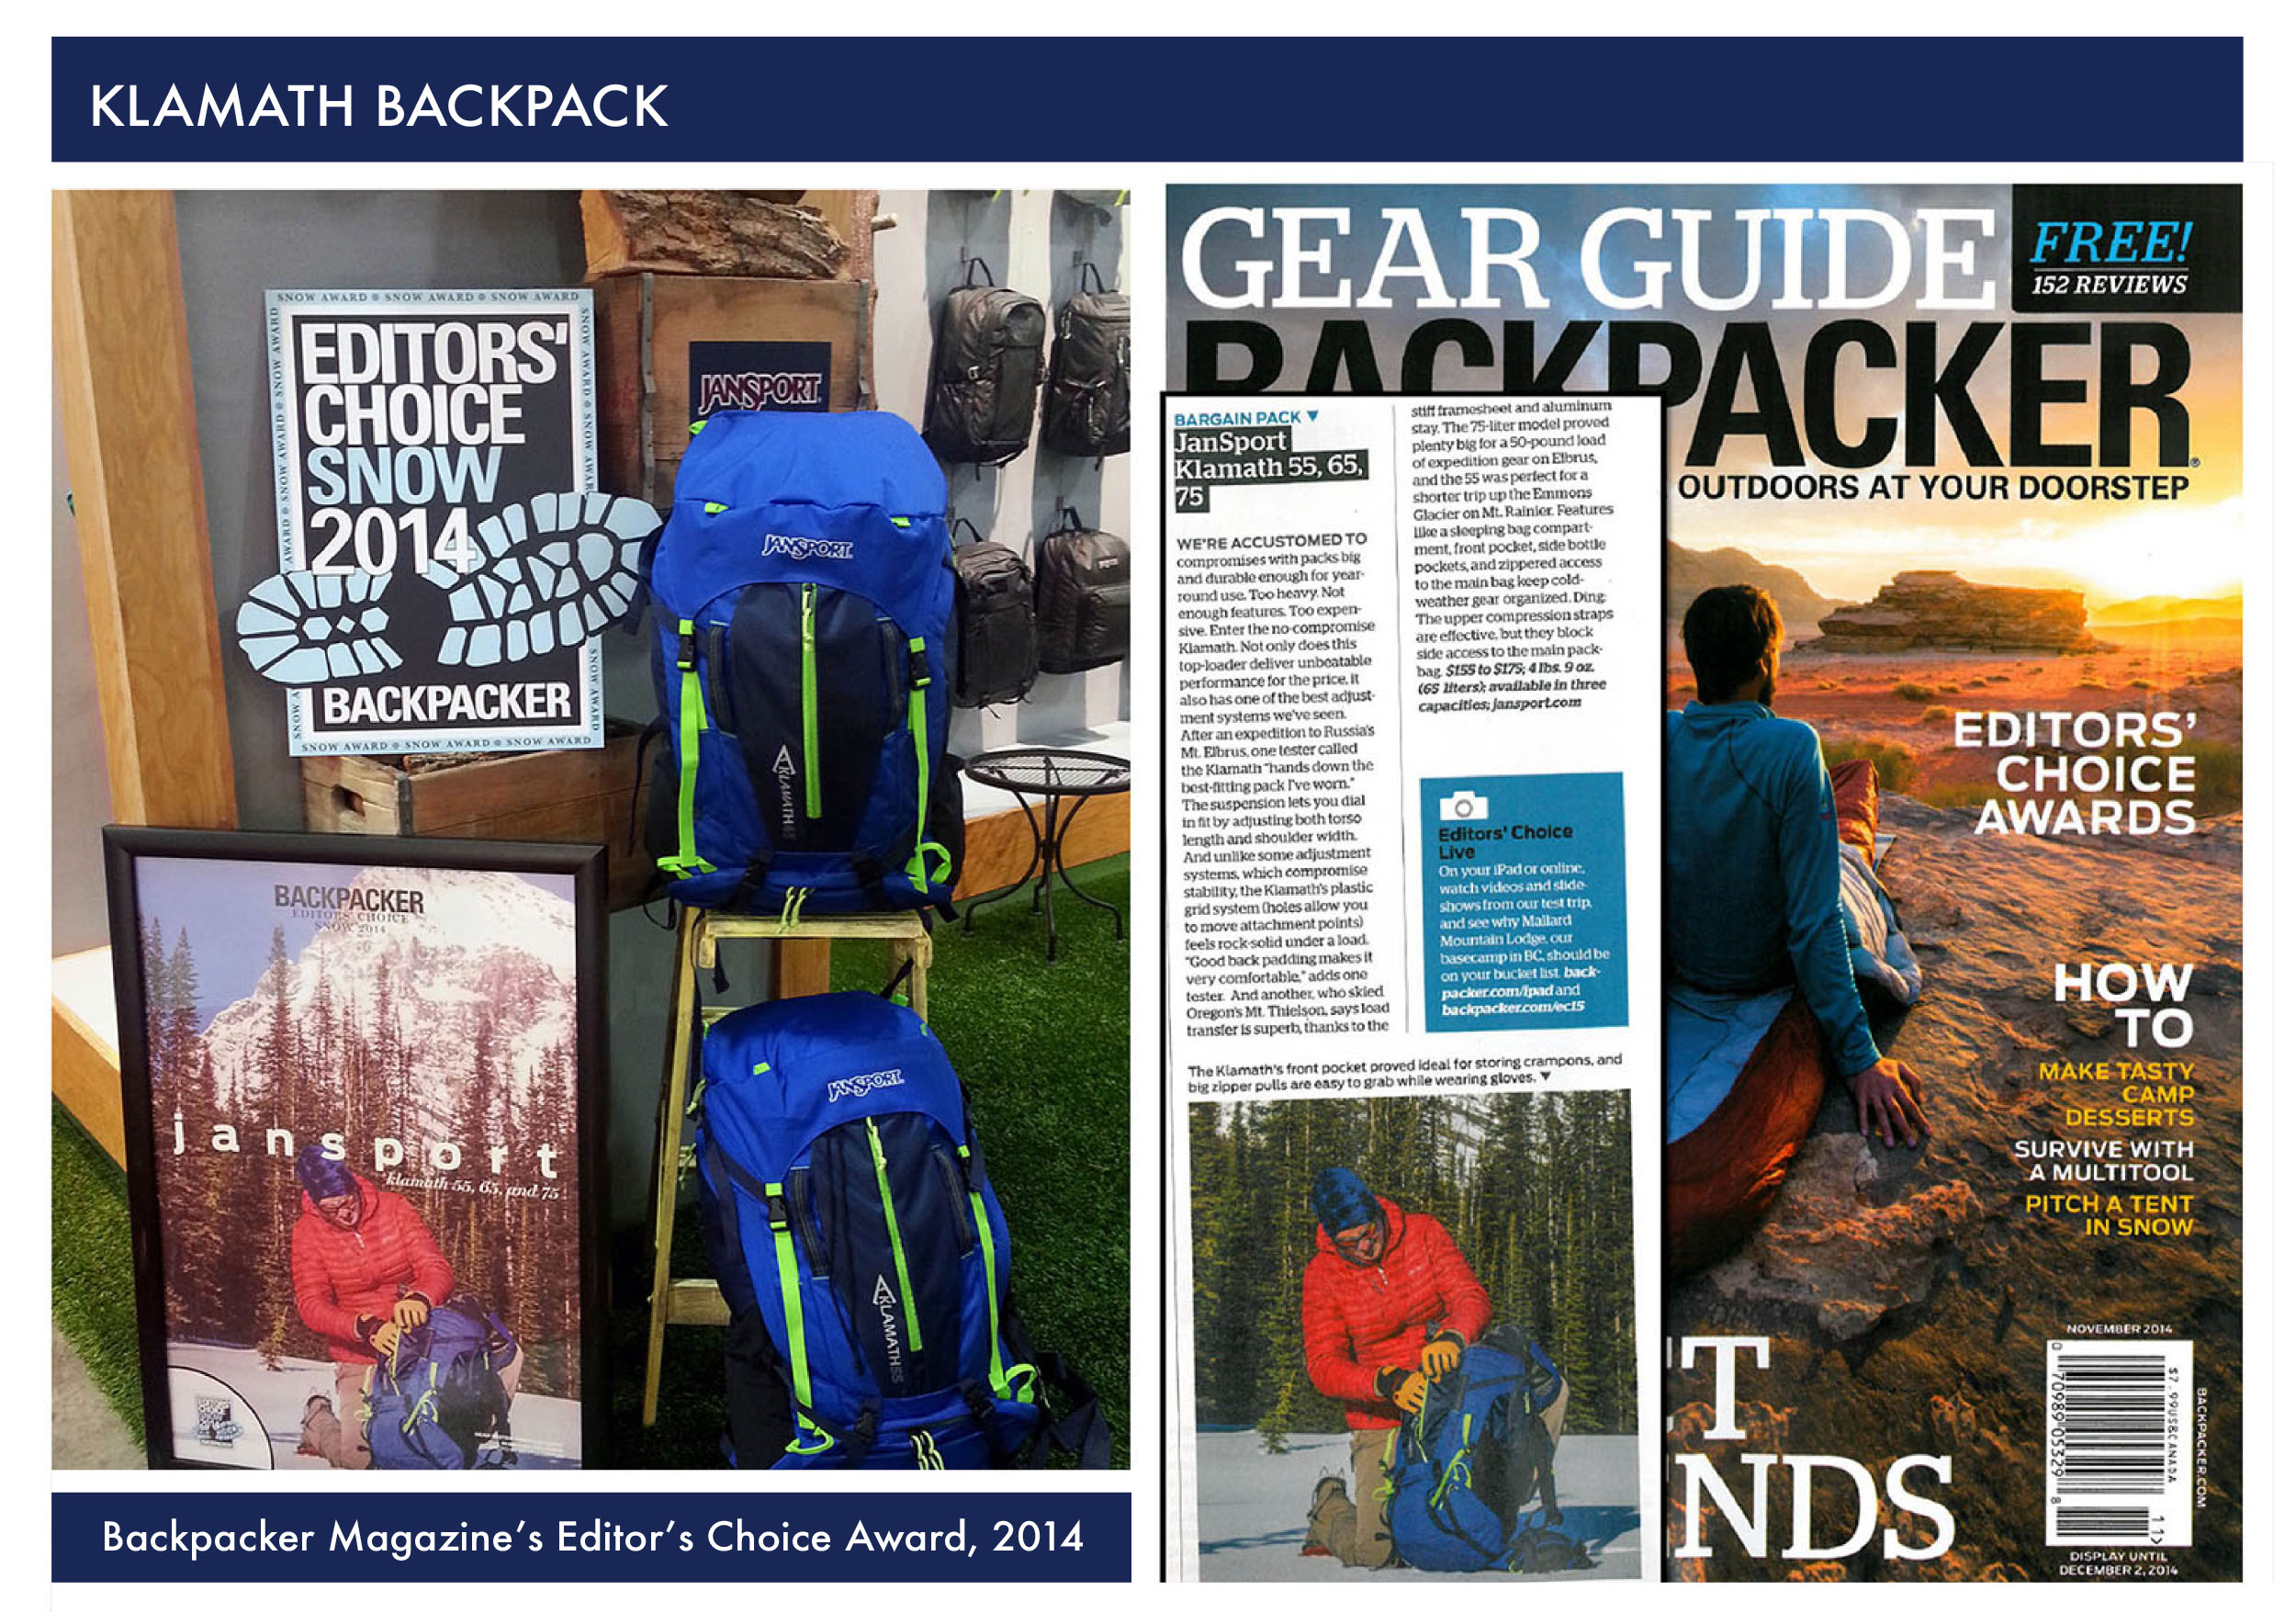 Jansport Senior Product Developer Backpacker Magazine Editors Choice